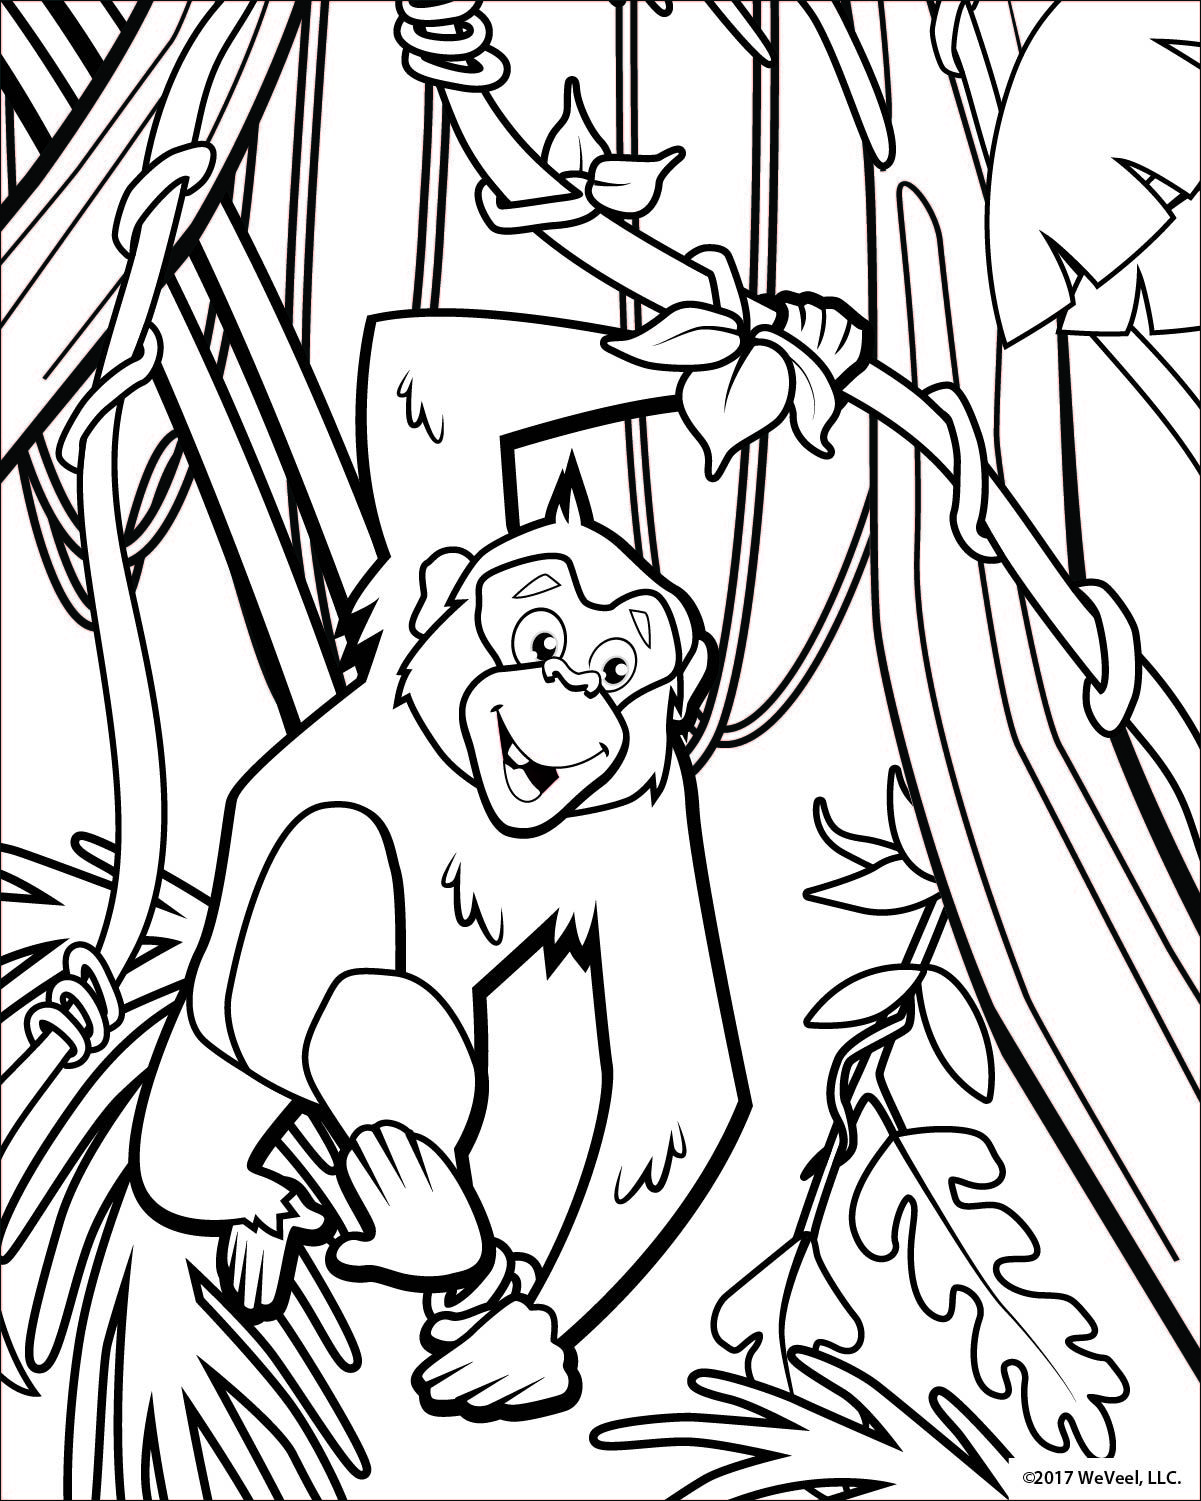 Coloring Pages Jungle Free Kids Coloring Pages Animal Coloring Pages Jungle Coloring Pages